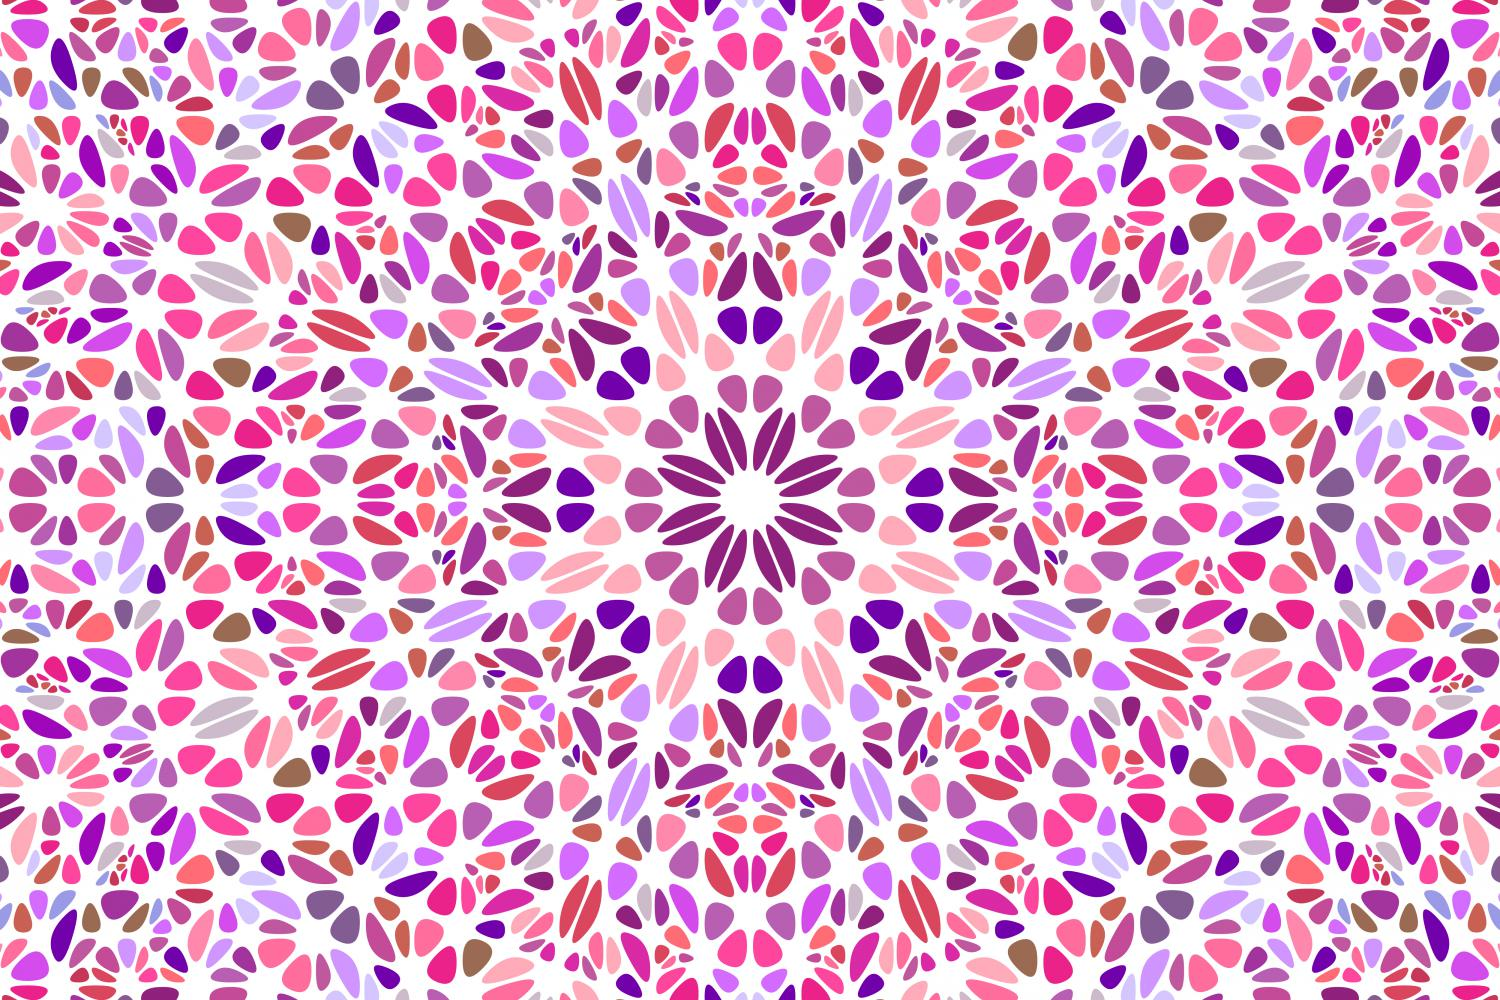 48 Floral Mandala Backgrounds example image 11